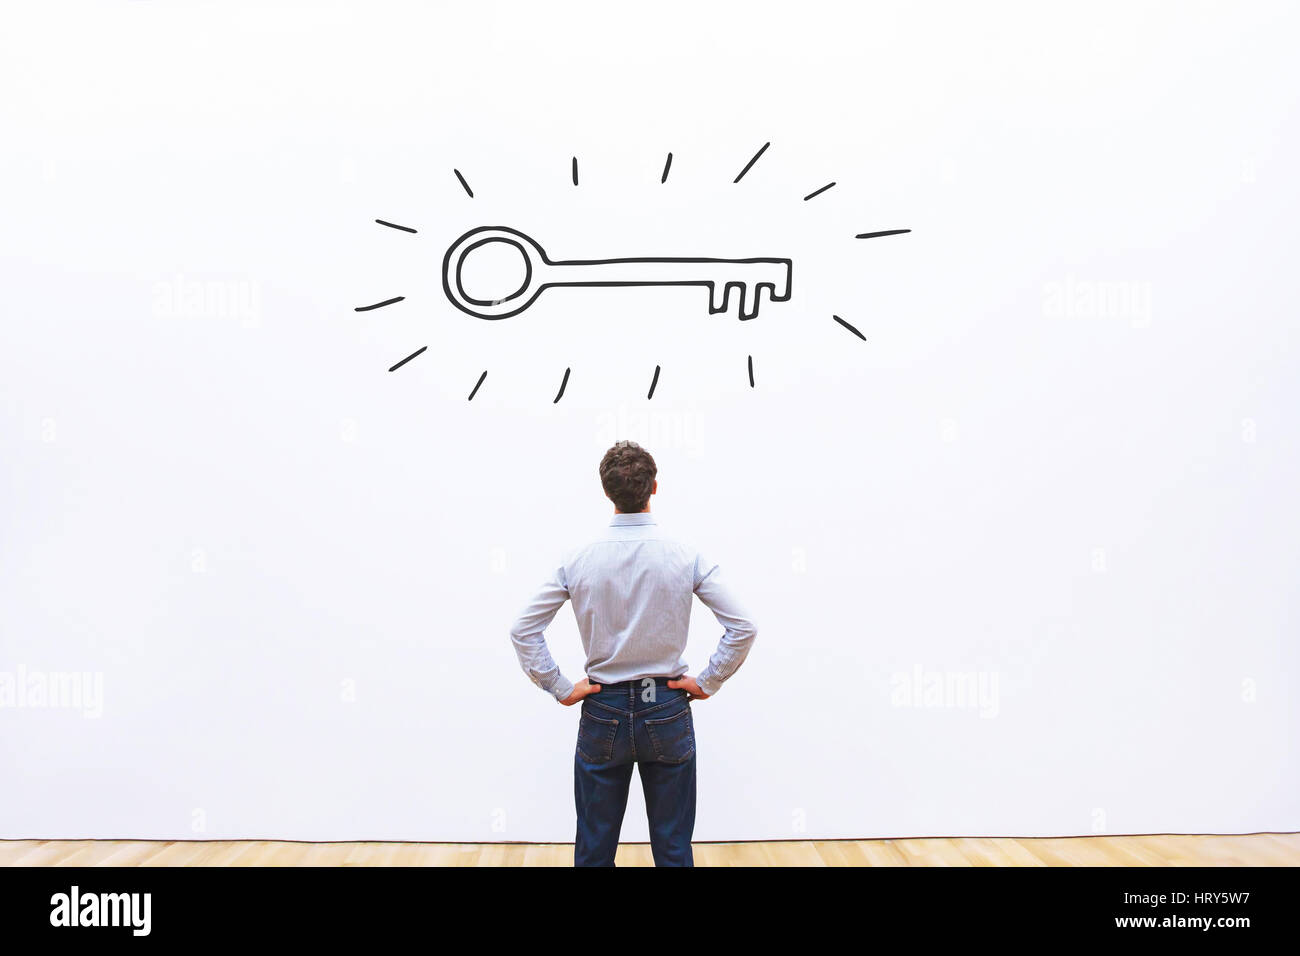 key to success, business opportunity or solution concept - Stock Image